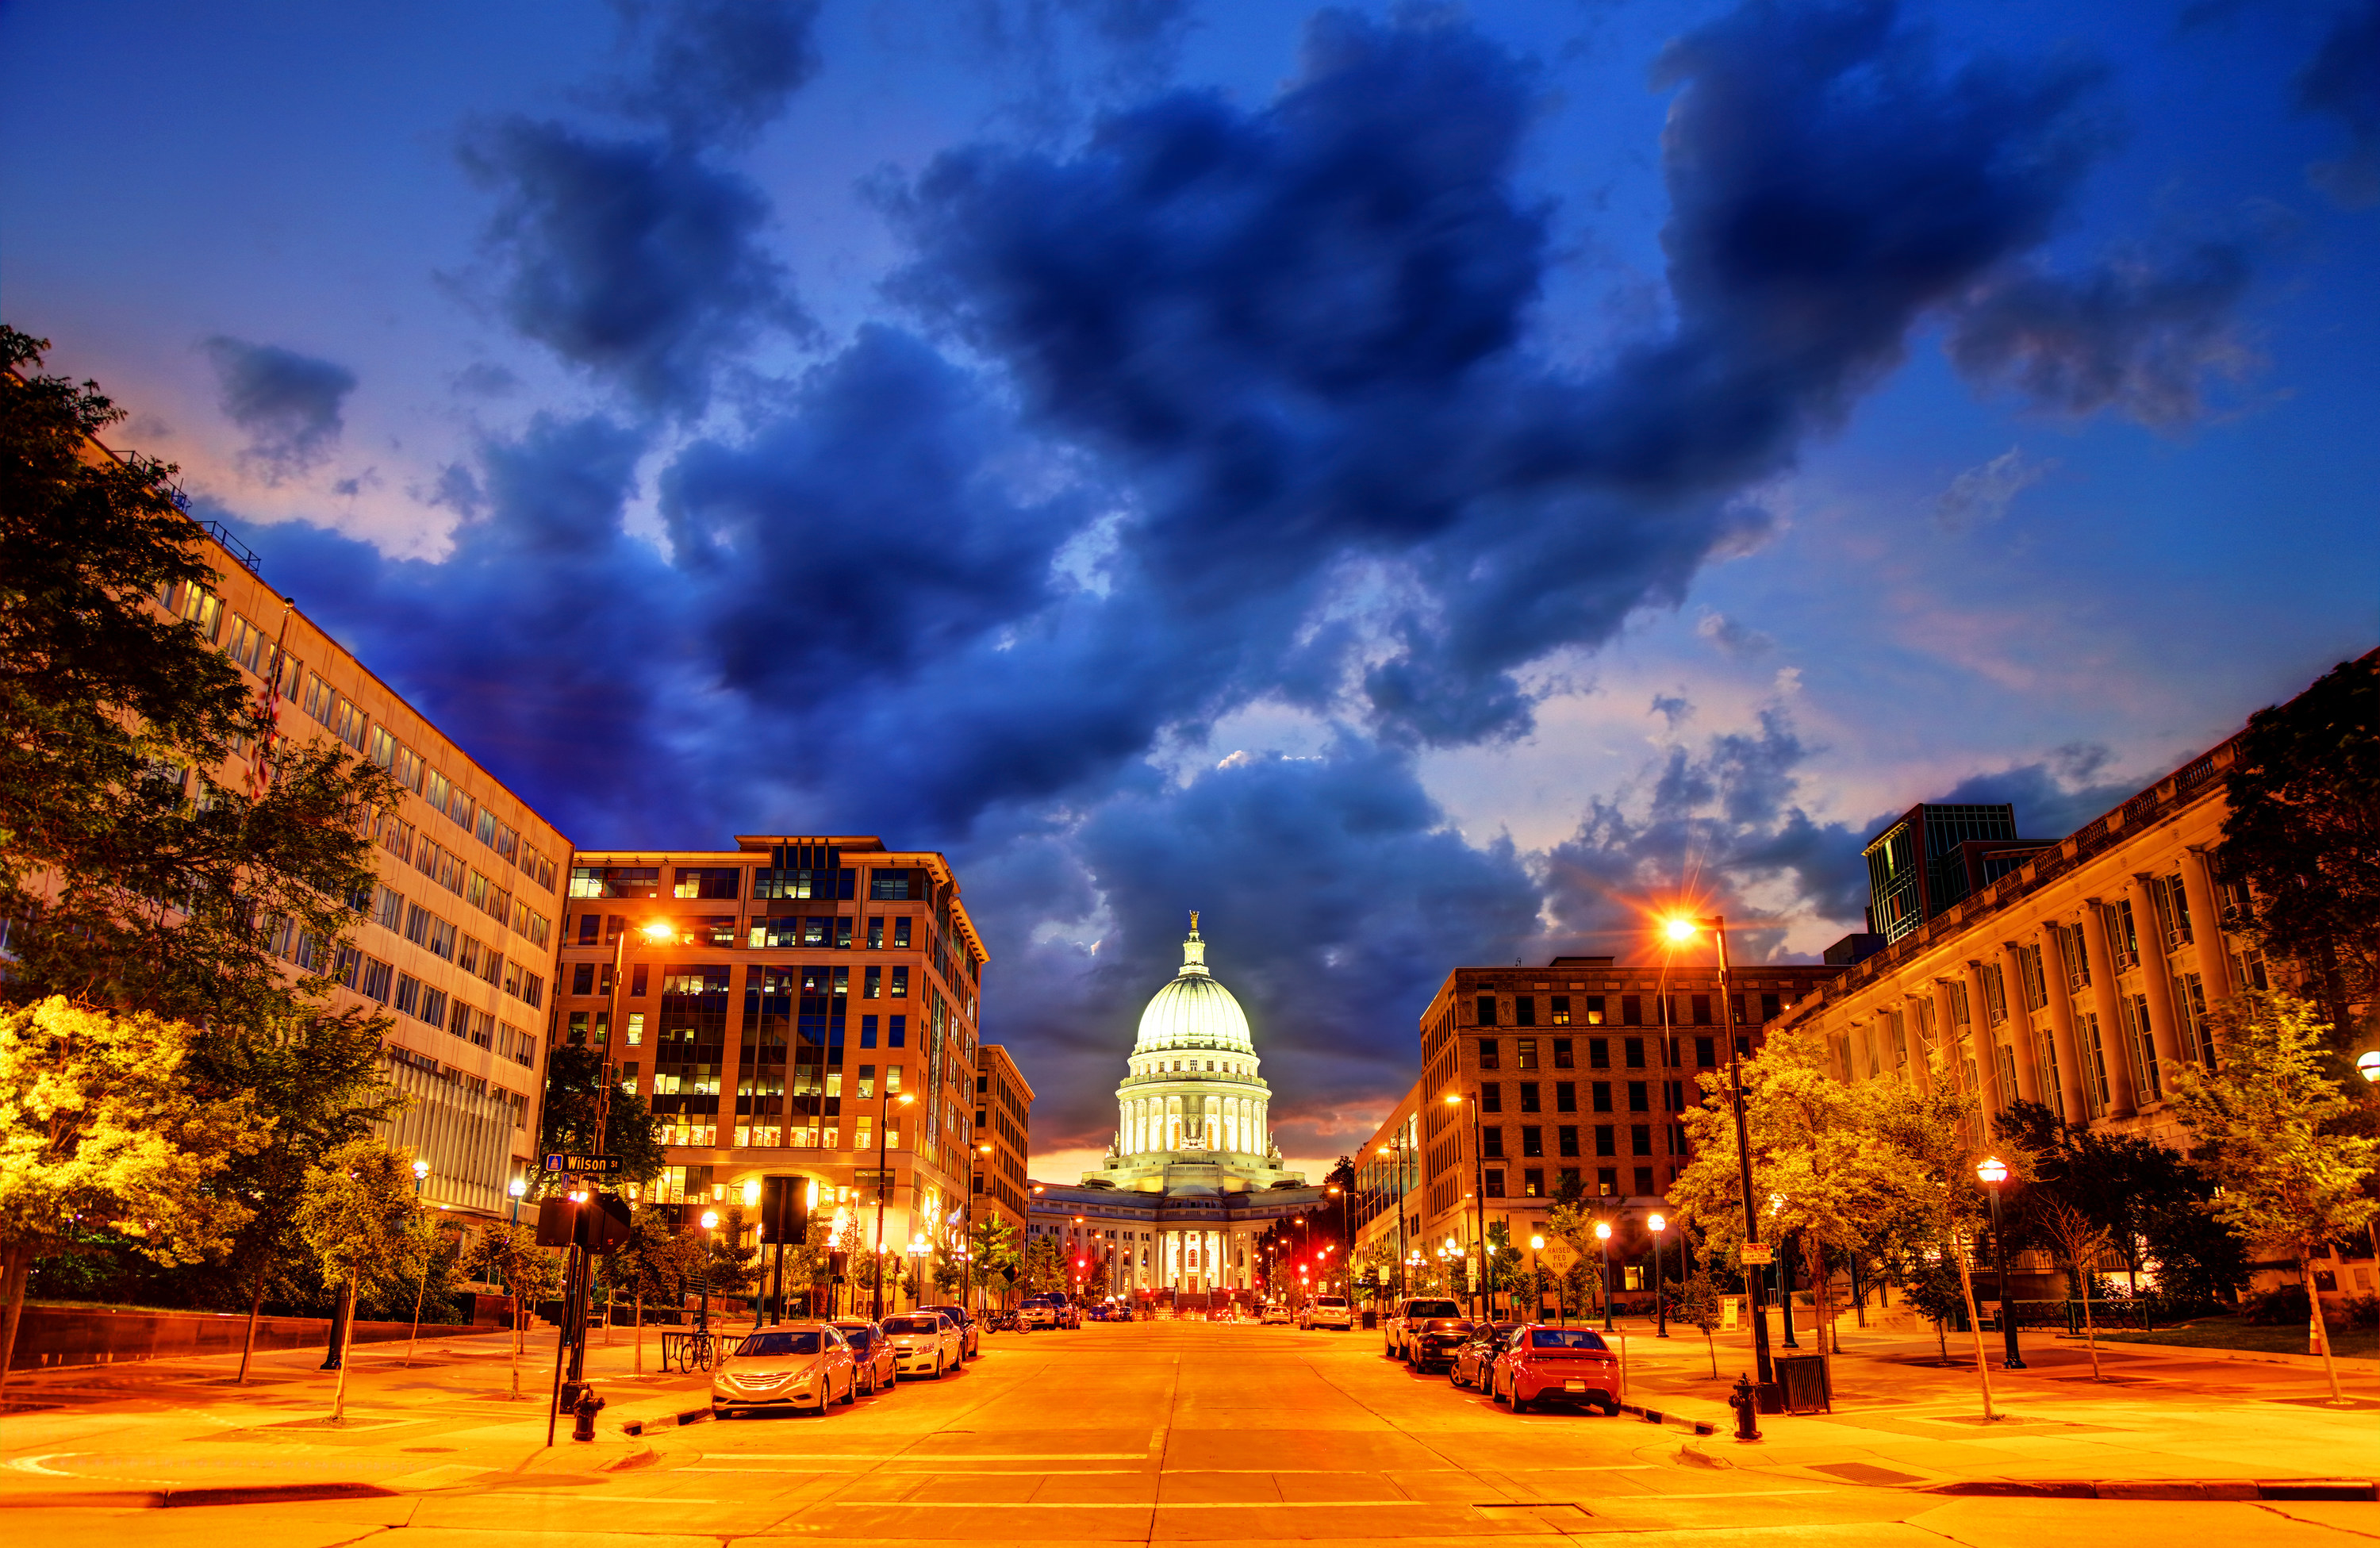 Night shot of the capital building in Madison, Wisconsin